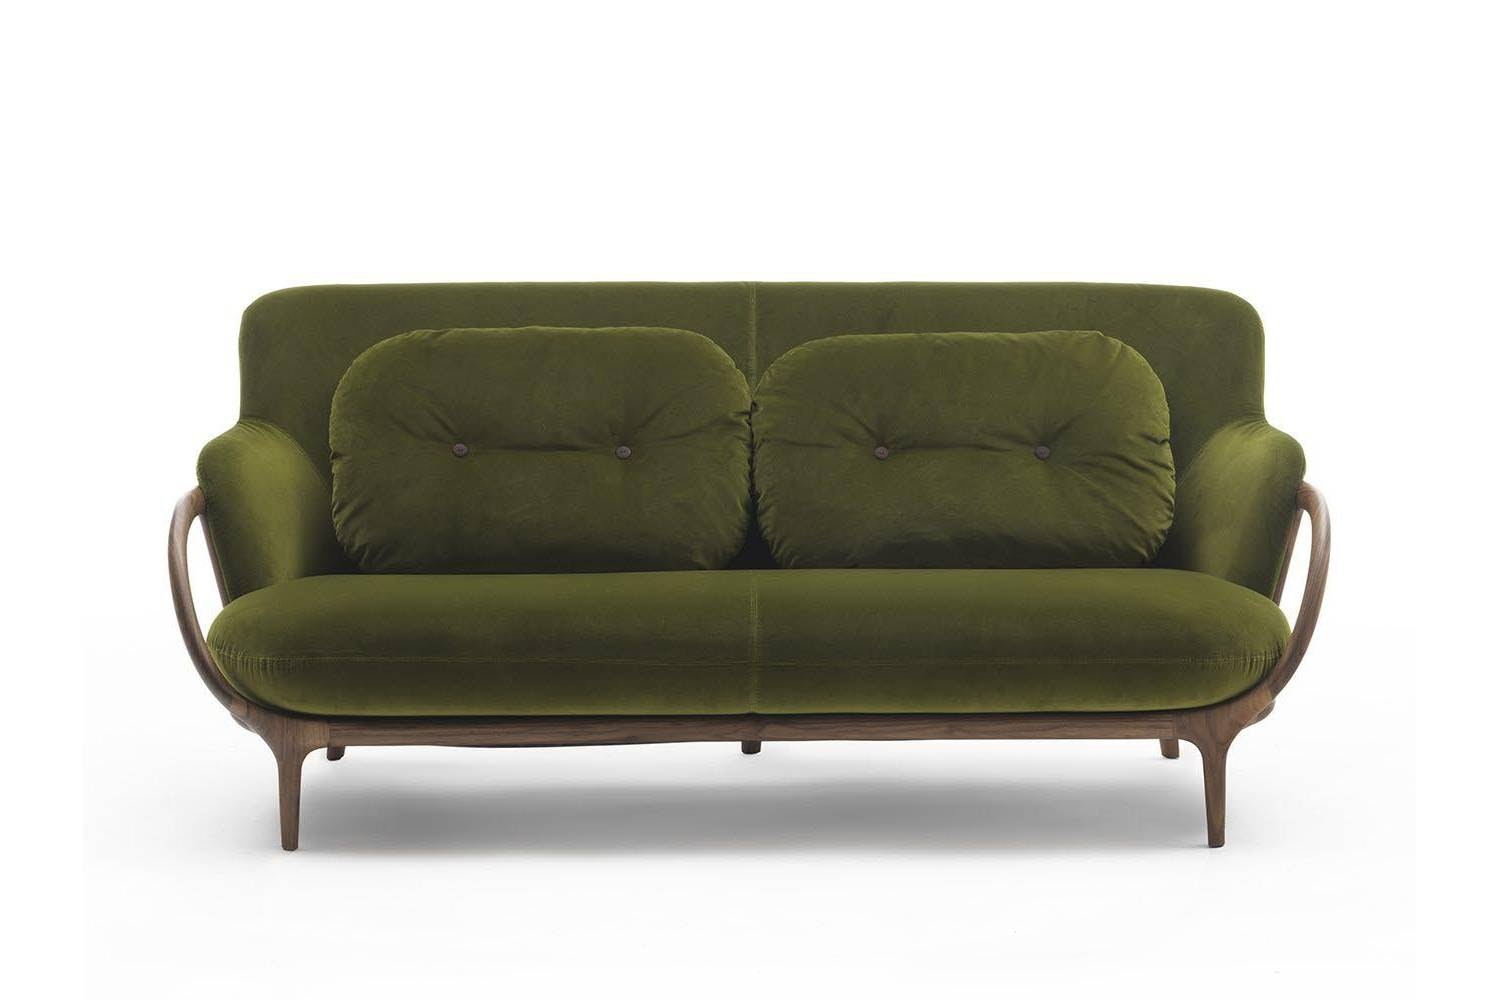 Allison Sofa by A. Borgogni for Porada